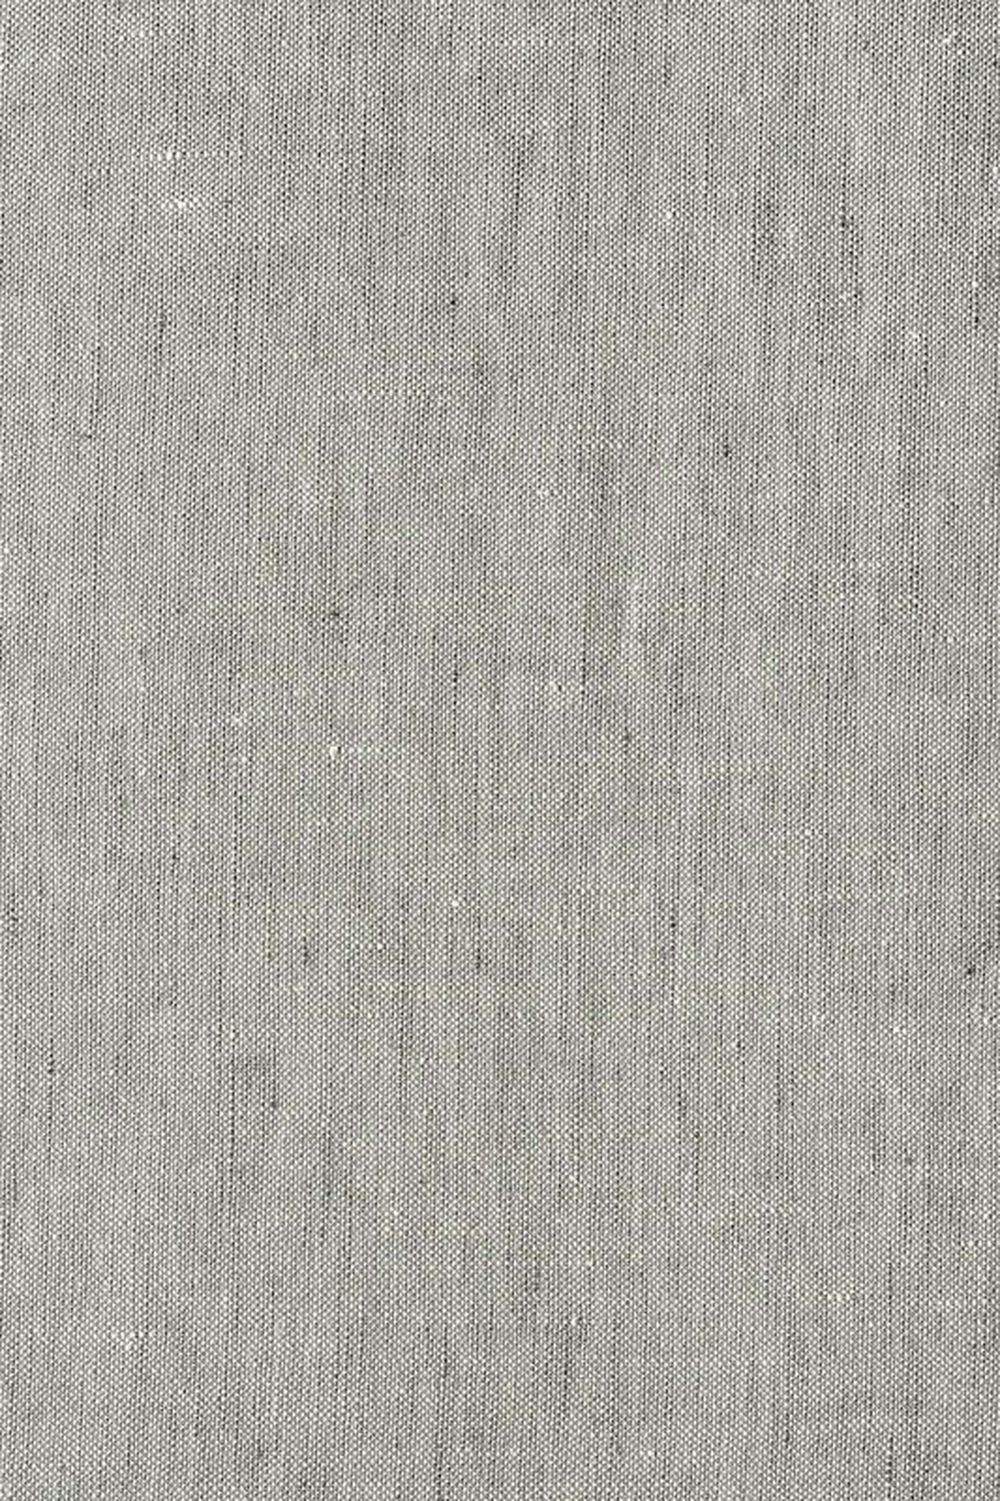 Photo of the fabric Kyoto * Mist swatch by James Dunlop. Use for Drapery. Style of Plain